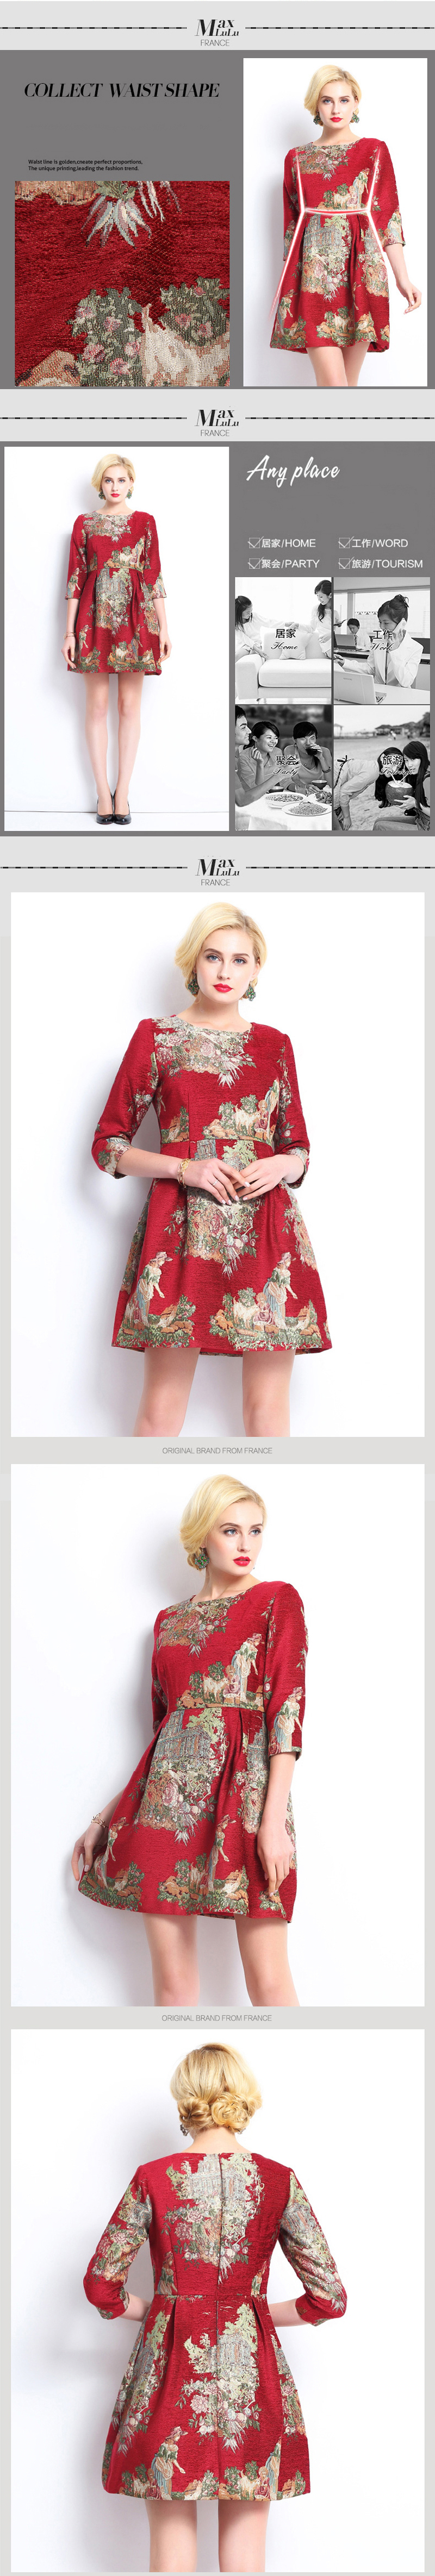 Max LuLu Autumn 2017 Luxury Brand Red Floral Women's Vintage Dresses Slash Neck Party Ladies Knitted Dress Brand Clothing XXXL 3